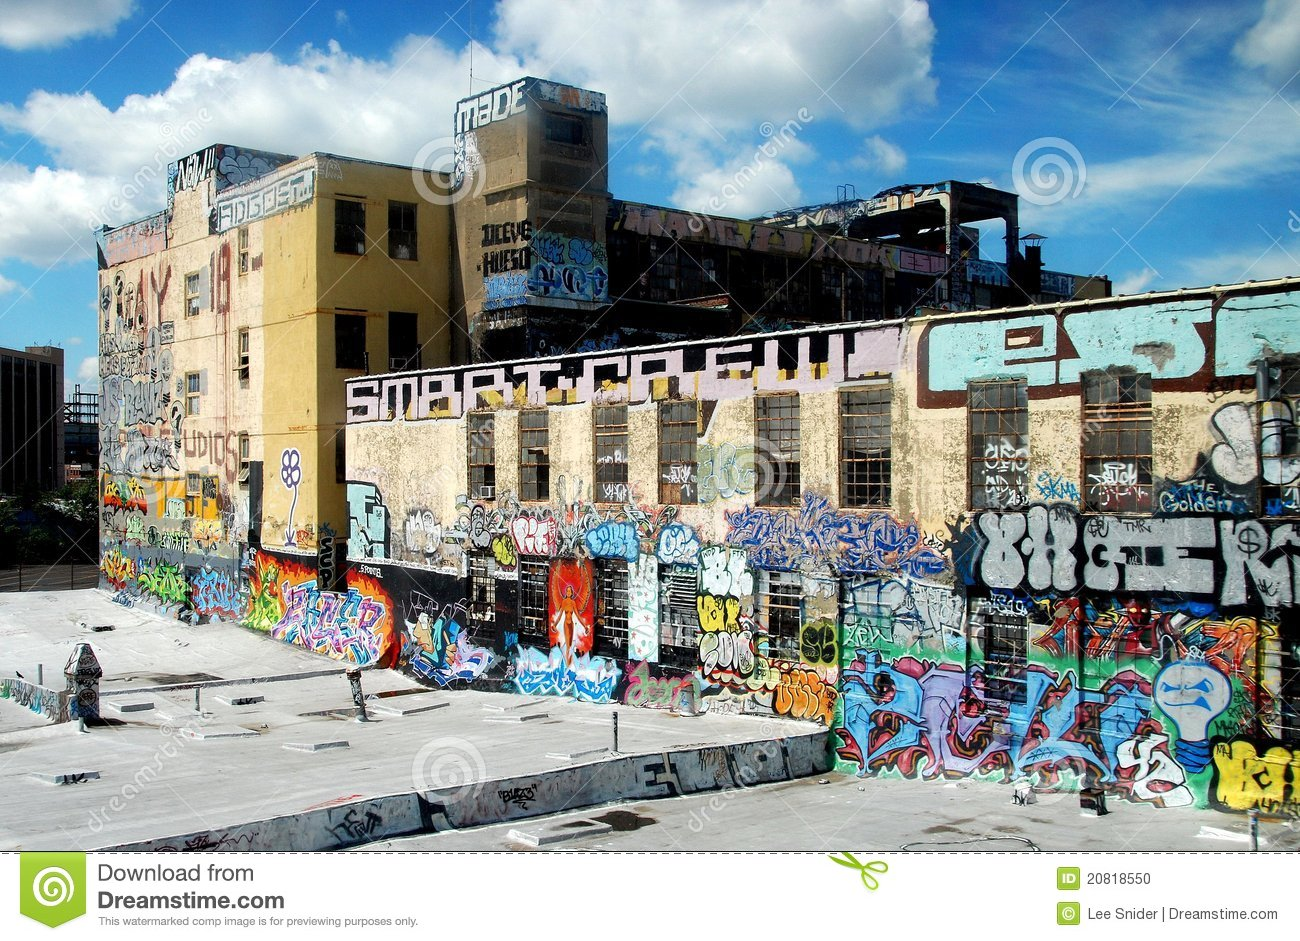 Graffiti wall in queens ny - Editorial Stock Photo